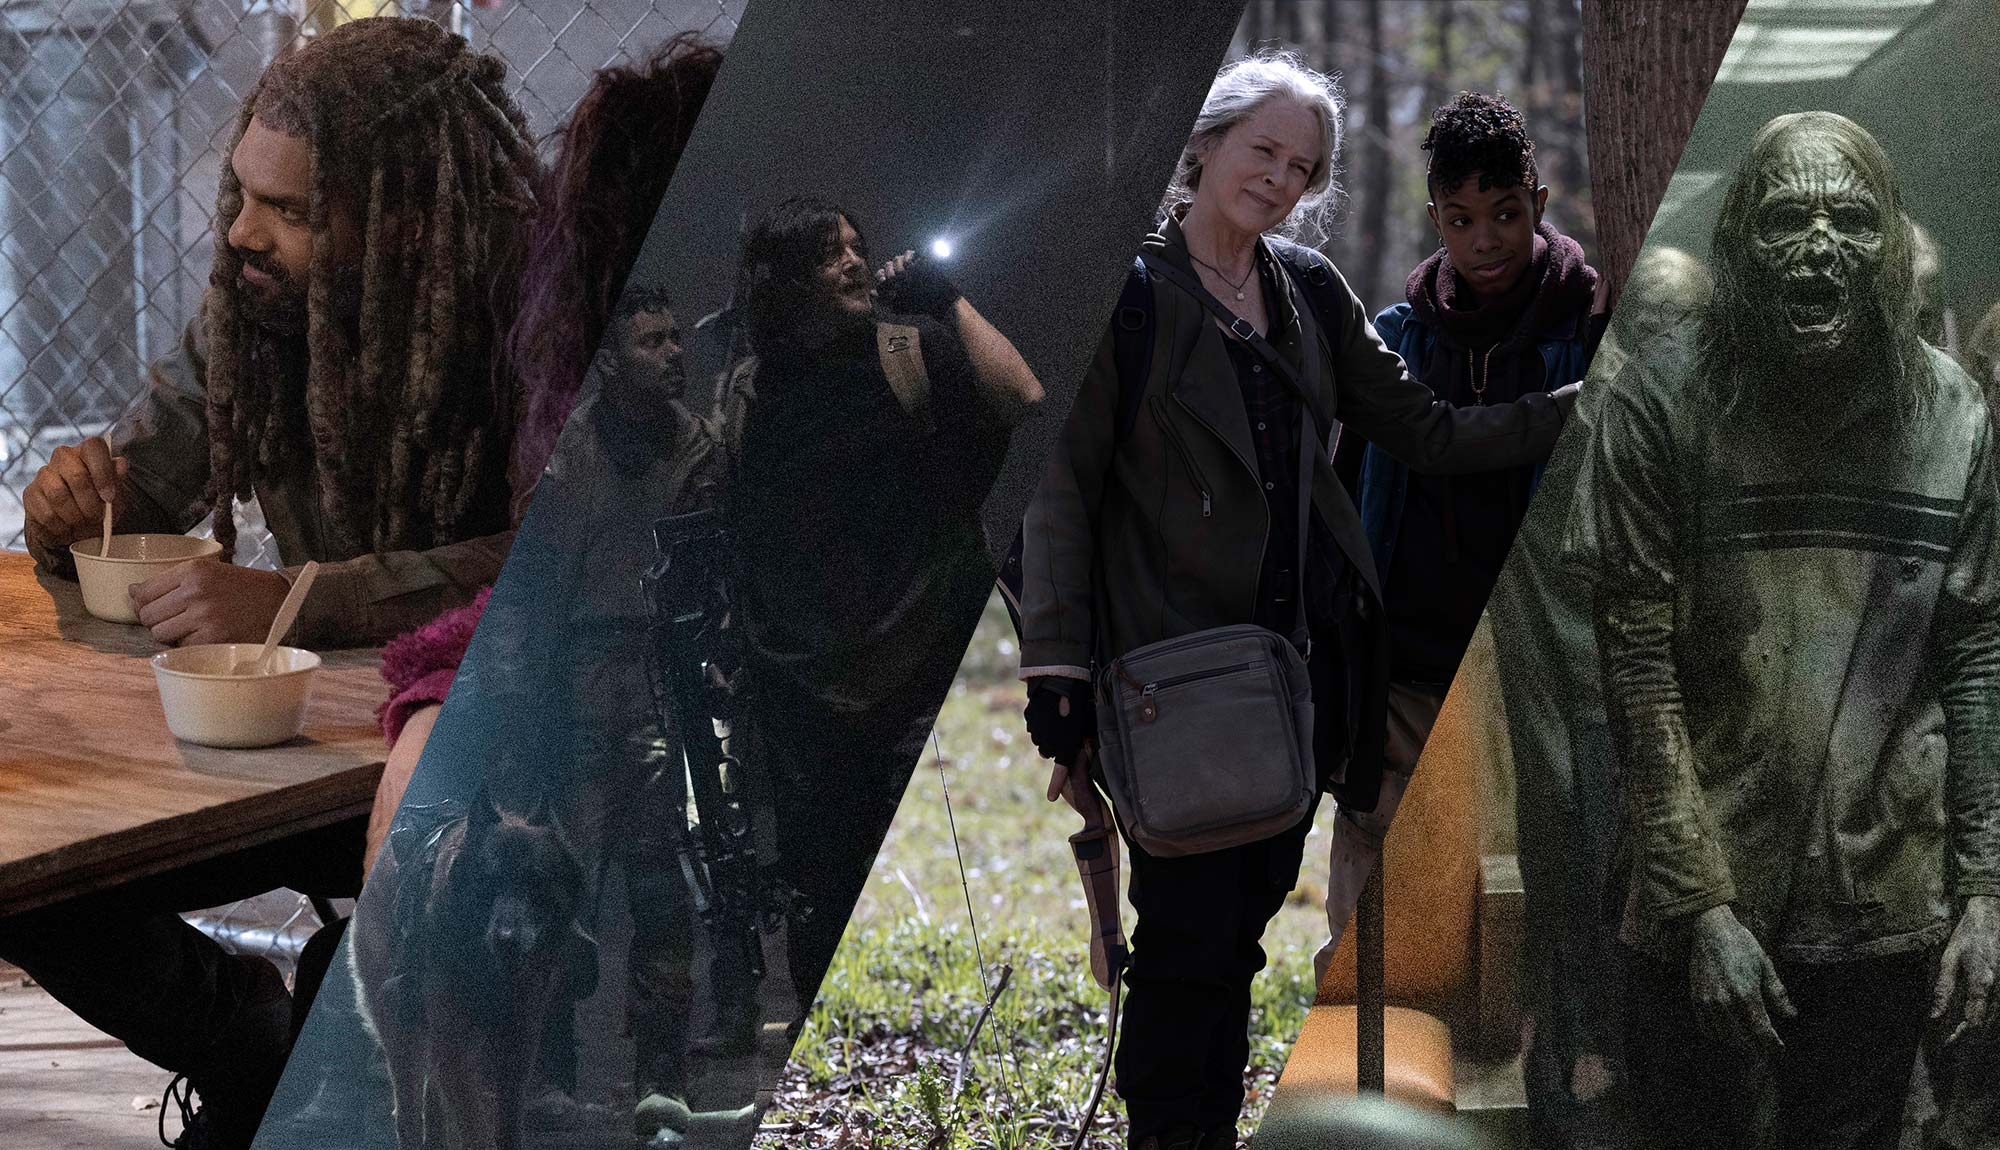 THE WALKING DEAD Season 11 Synopsis and New Images - Skybound Entertainment